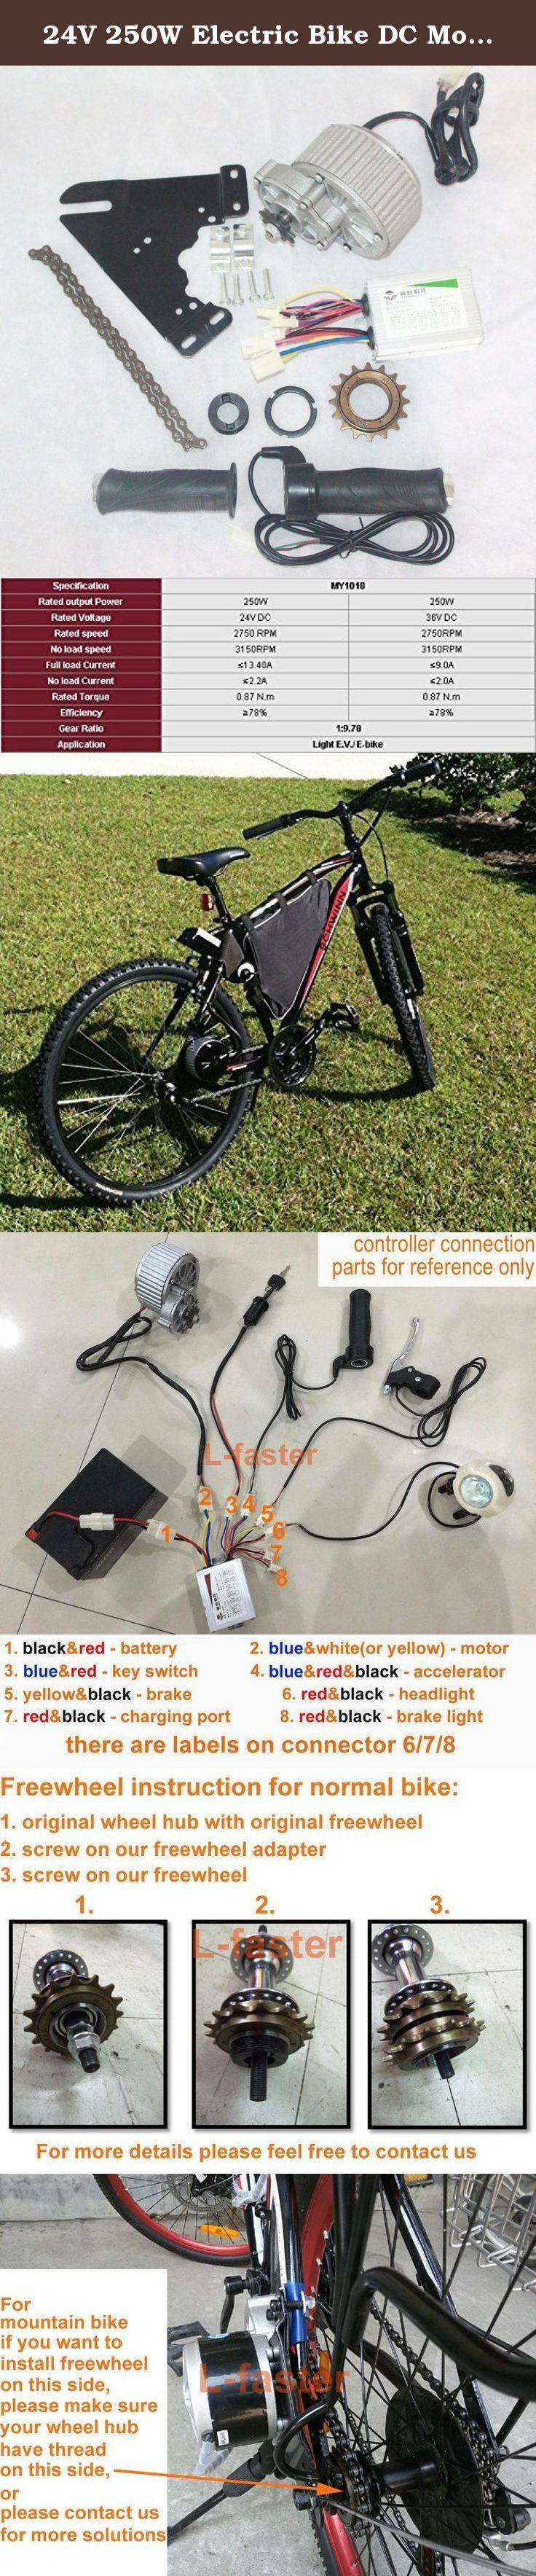 24v 250w Electric Bike Dc Motor Electric Scooter Motor Electric Bicycle Conversion Kit Gear Re Electric Bicycle Conversion Kit Electric Bicycle Bicycle Workout